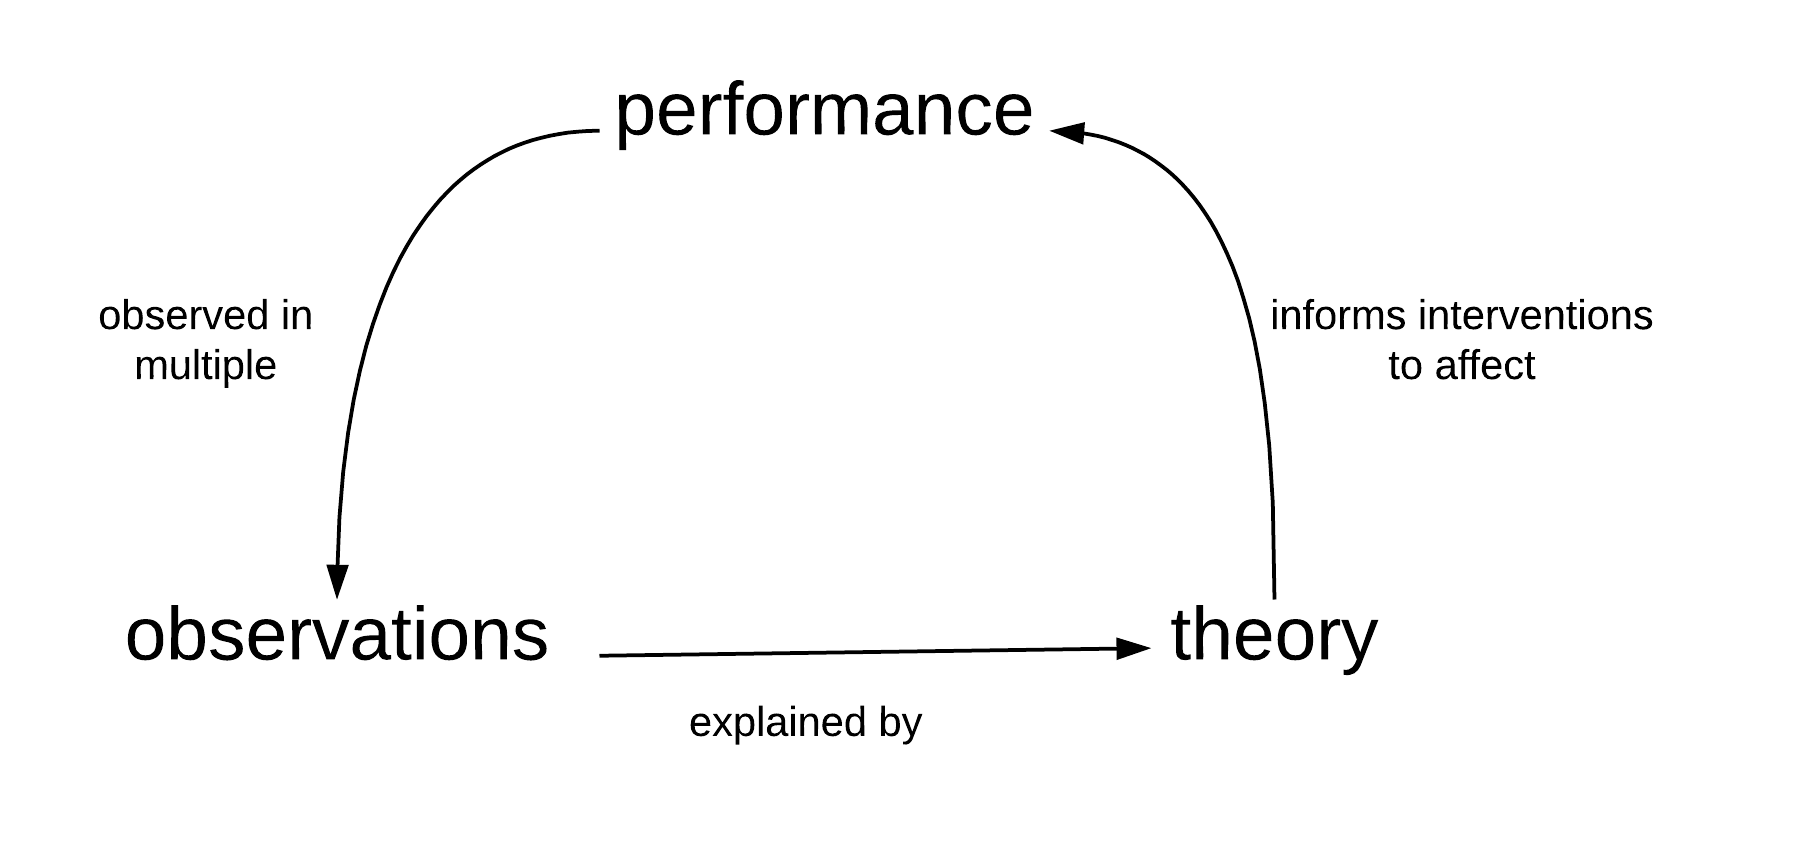 design results from performance, observations, and theory